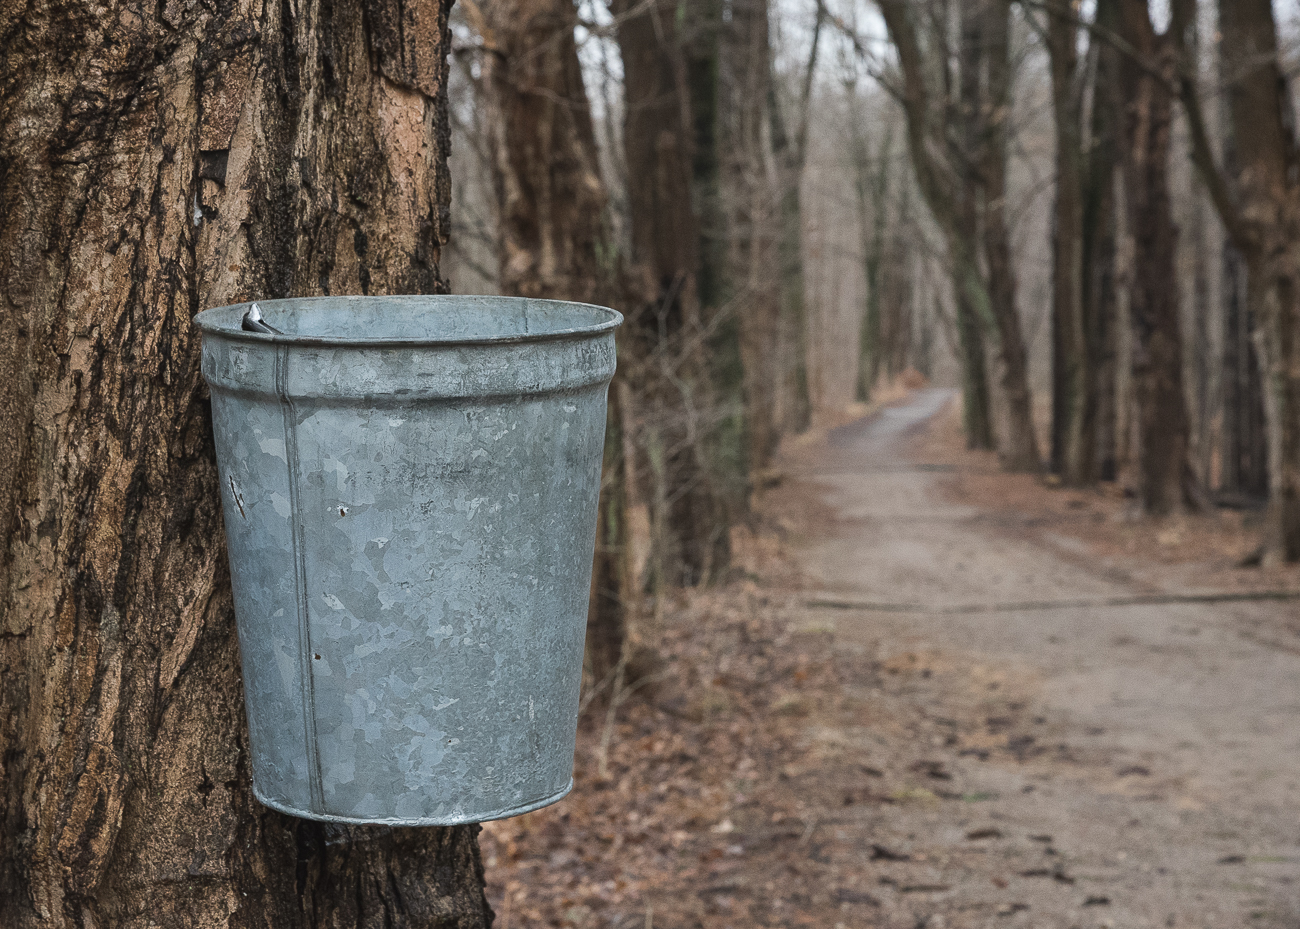 Trees are tapped and buckets are hung to collect the liquid sap along the trial. / Image: Phil Armstrong, Cincinnati Refined // Published: 2.17.18<p></p>